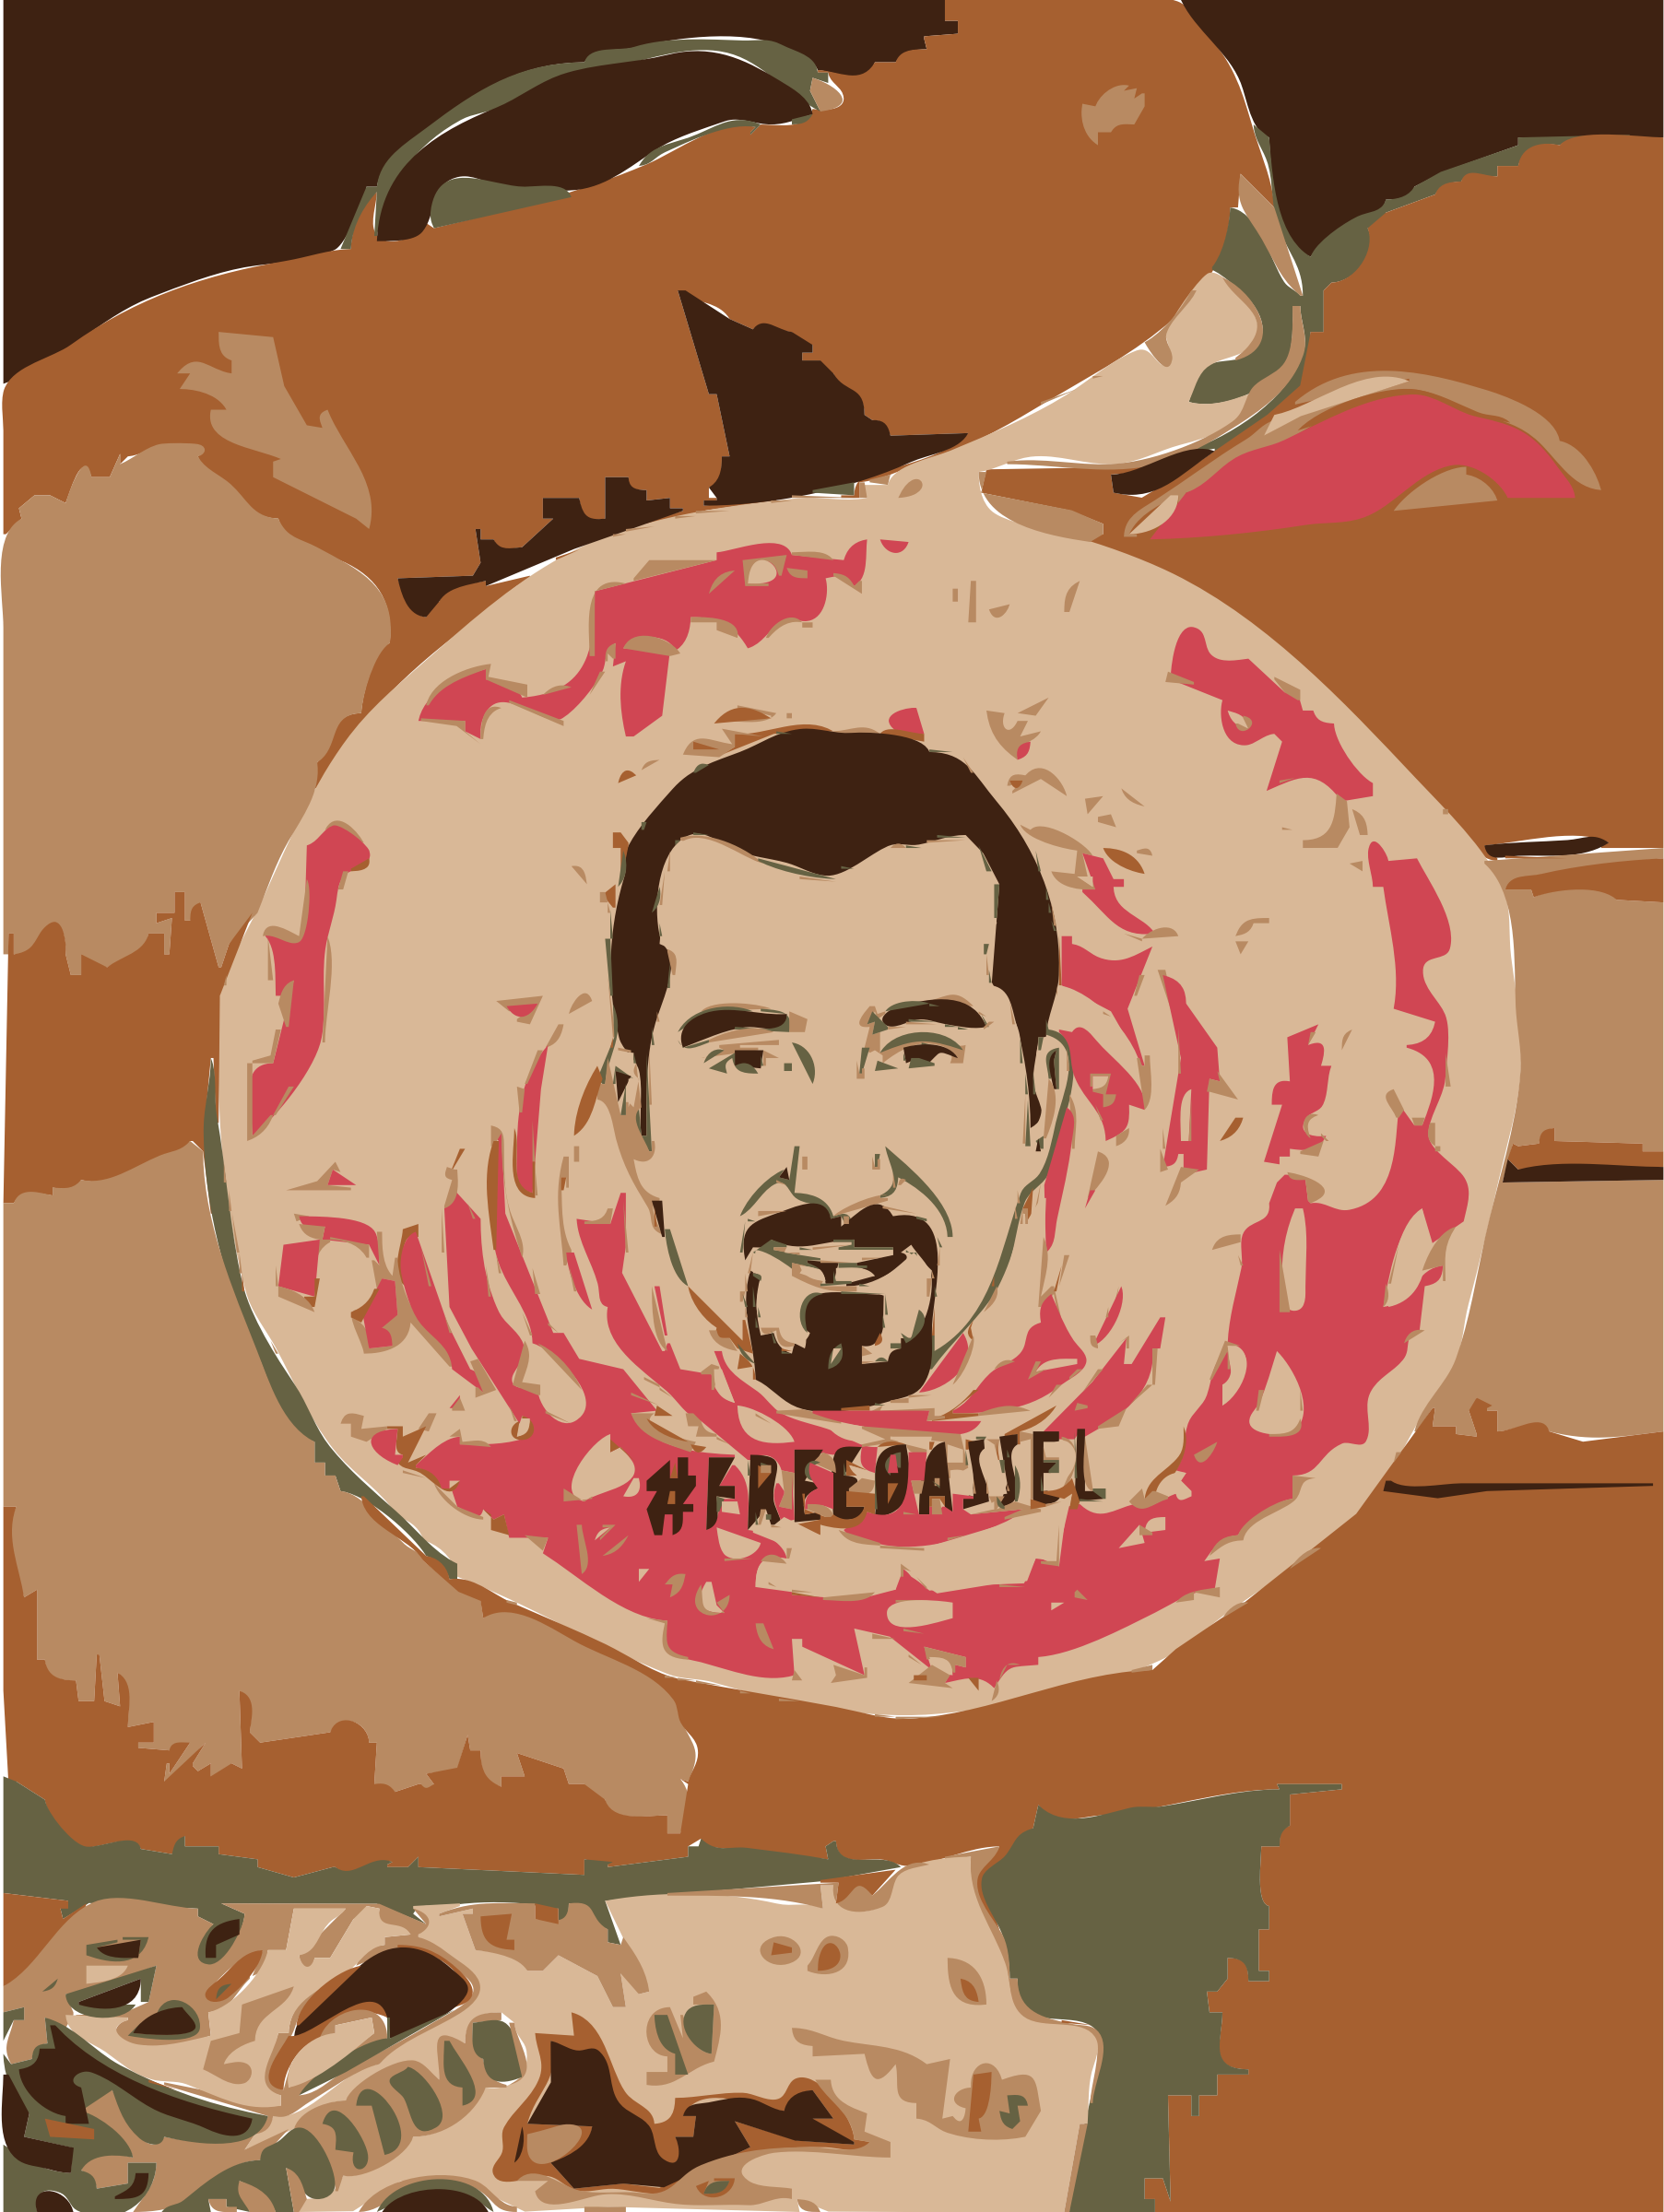 Freebassel on hand by rejon